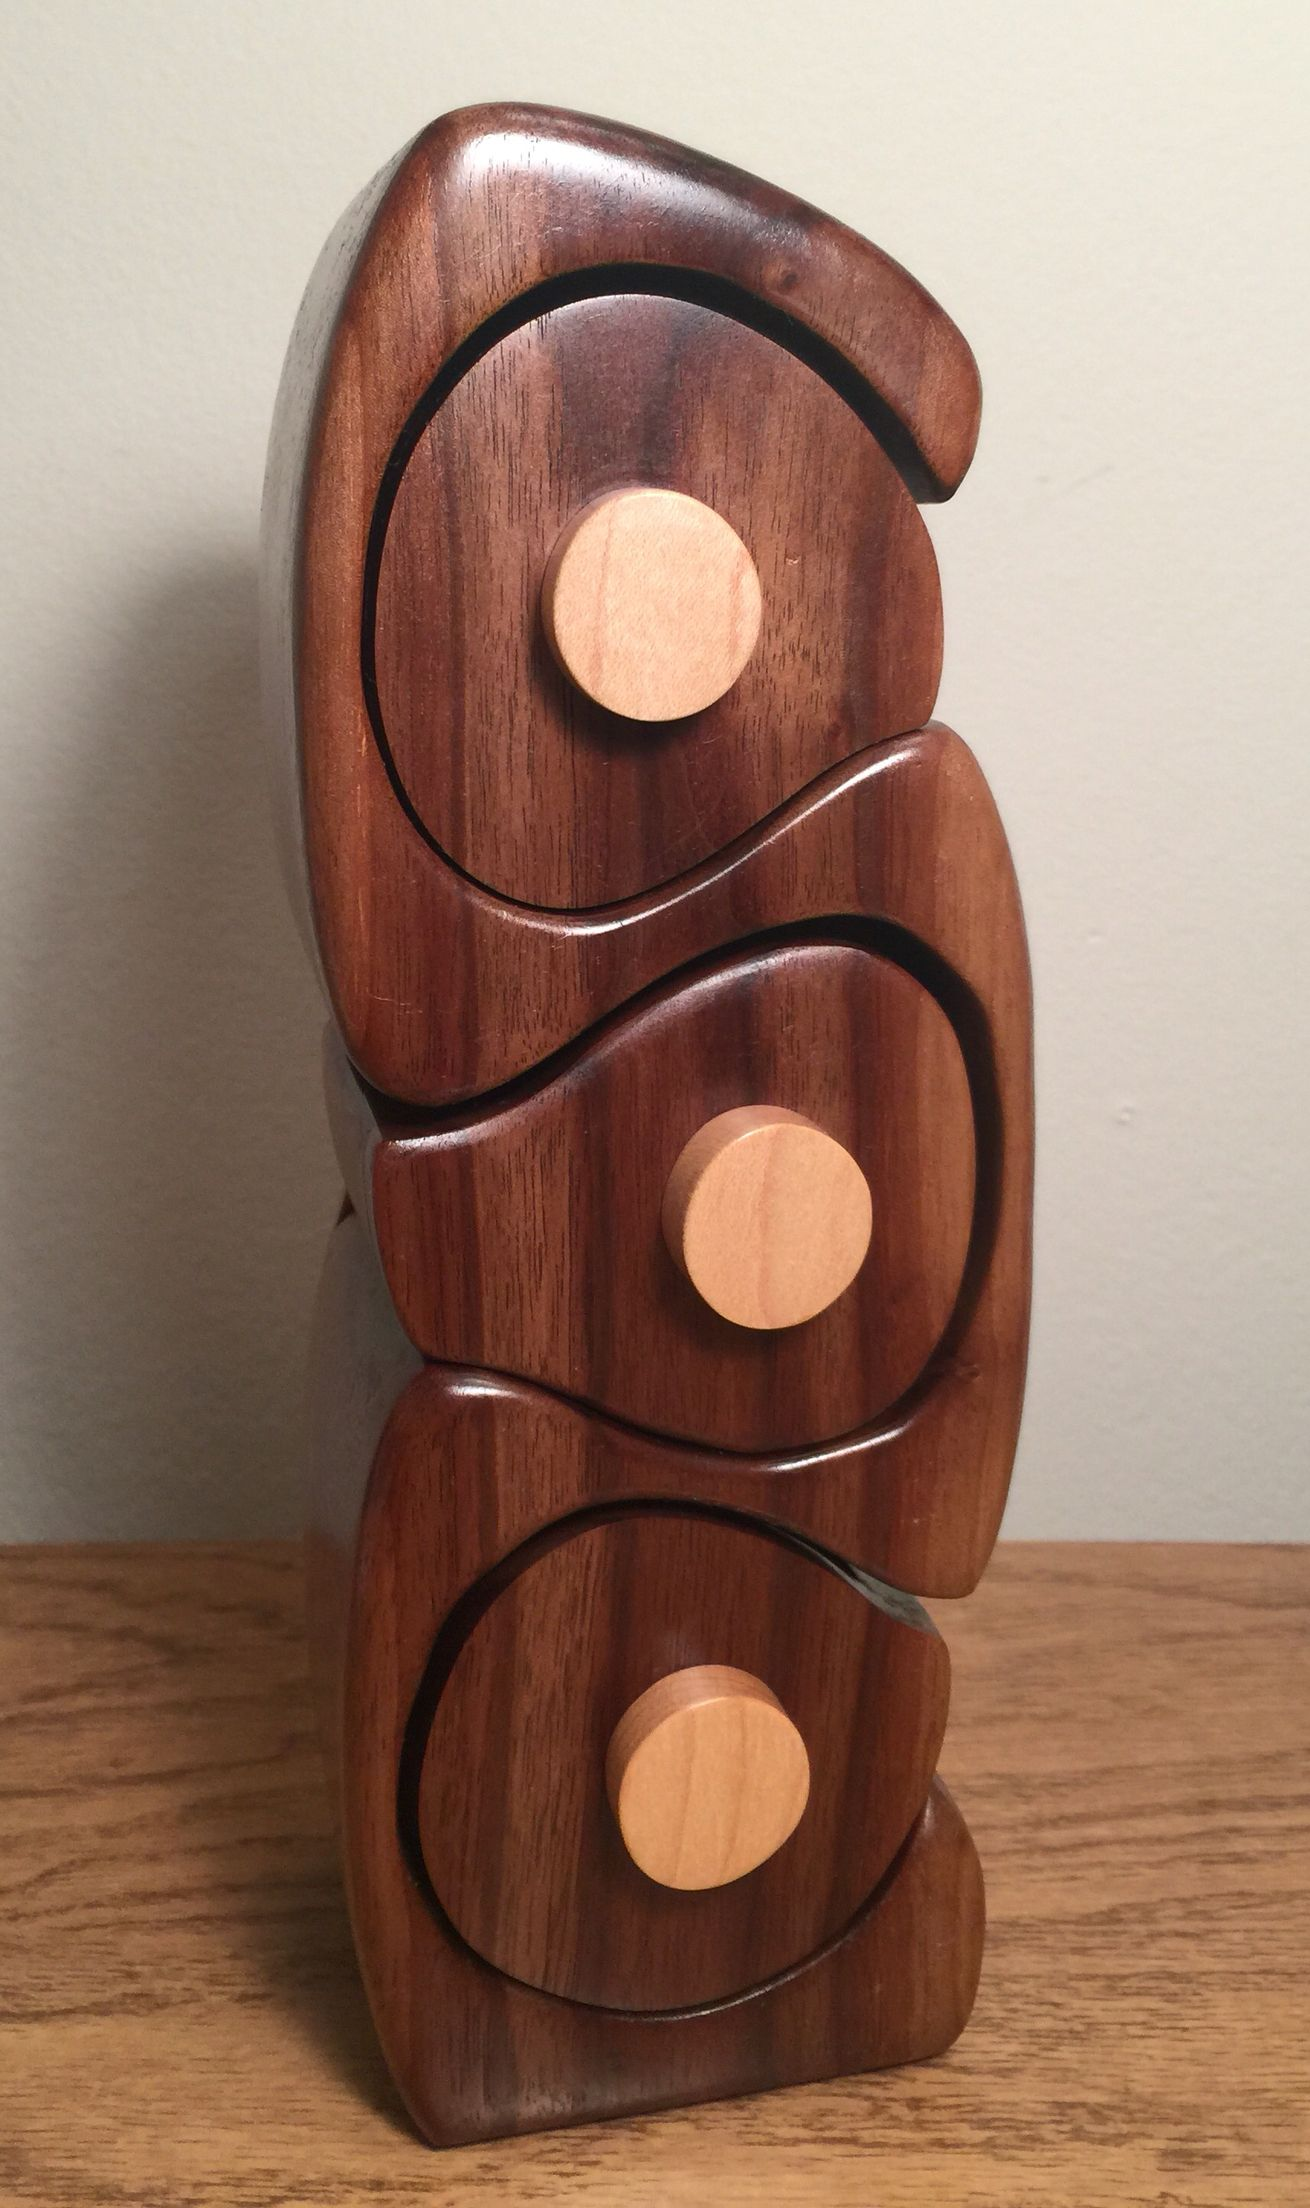 Bandsaw box made from a black walnut log with maple drawer pulls